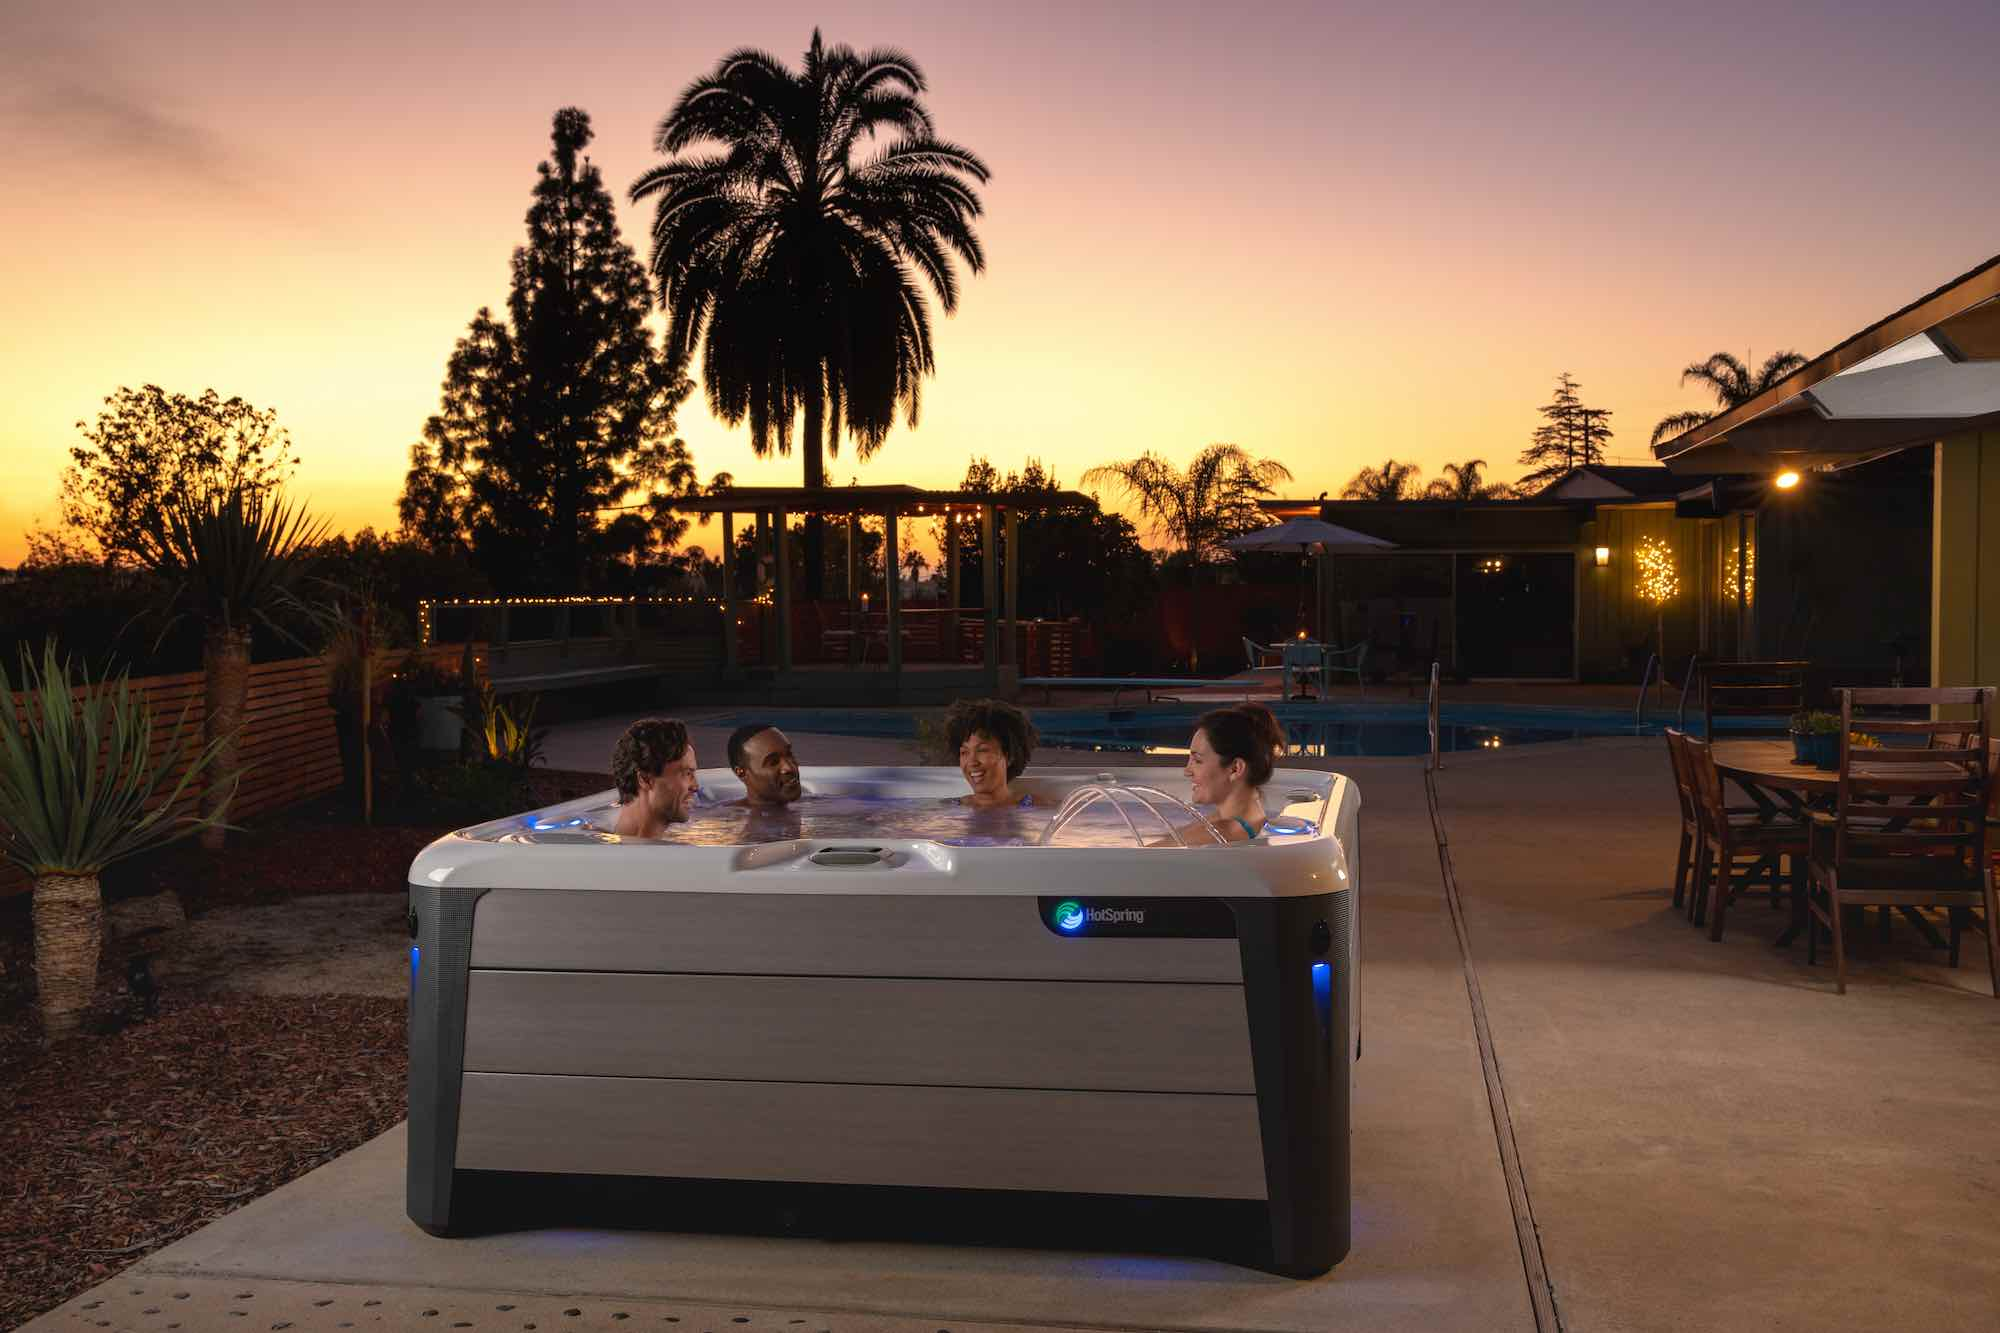 Hot Spring Spas Vanguard Hot Tub at Lifestyle Outdoor in Los Angeles, California